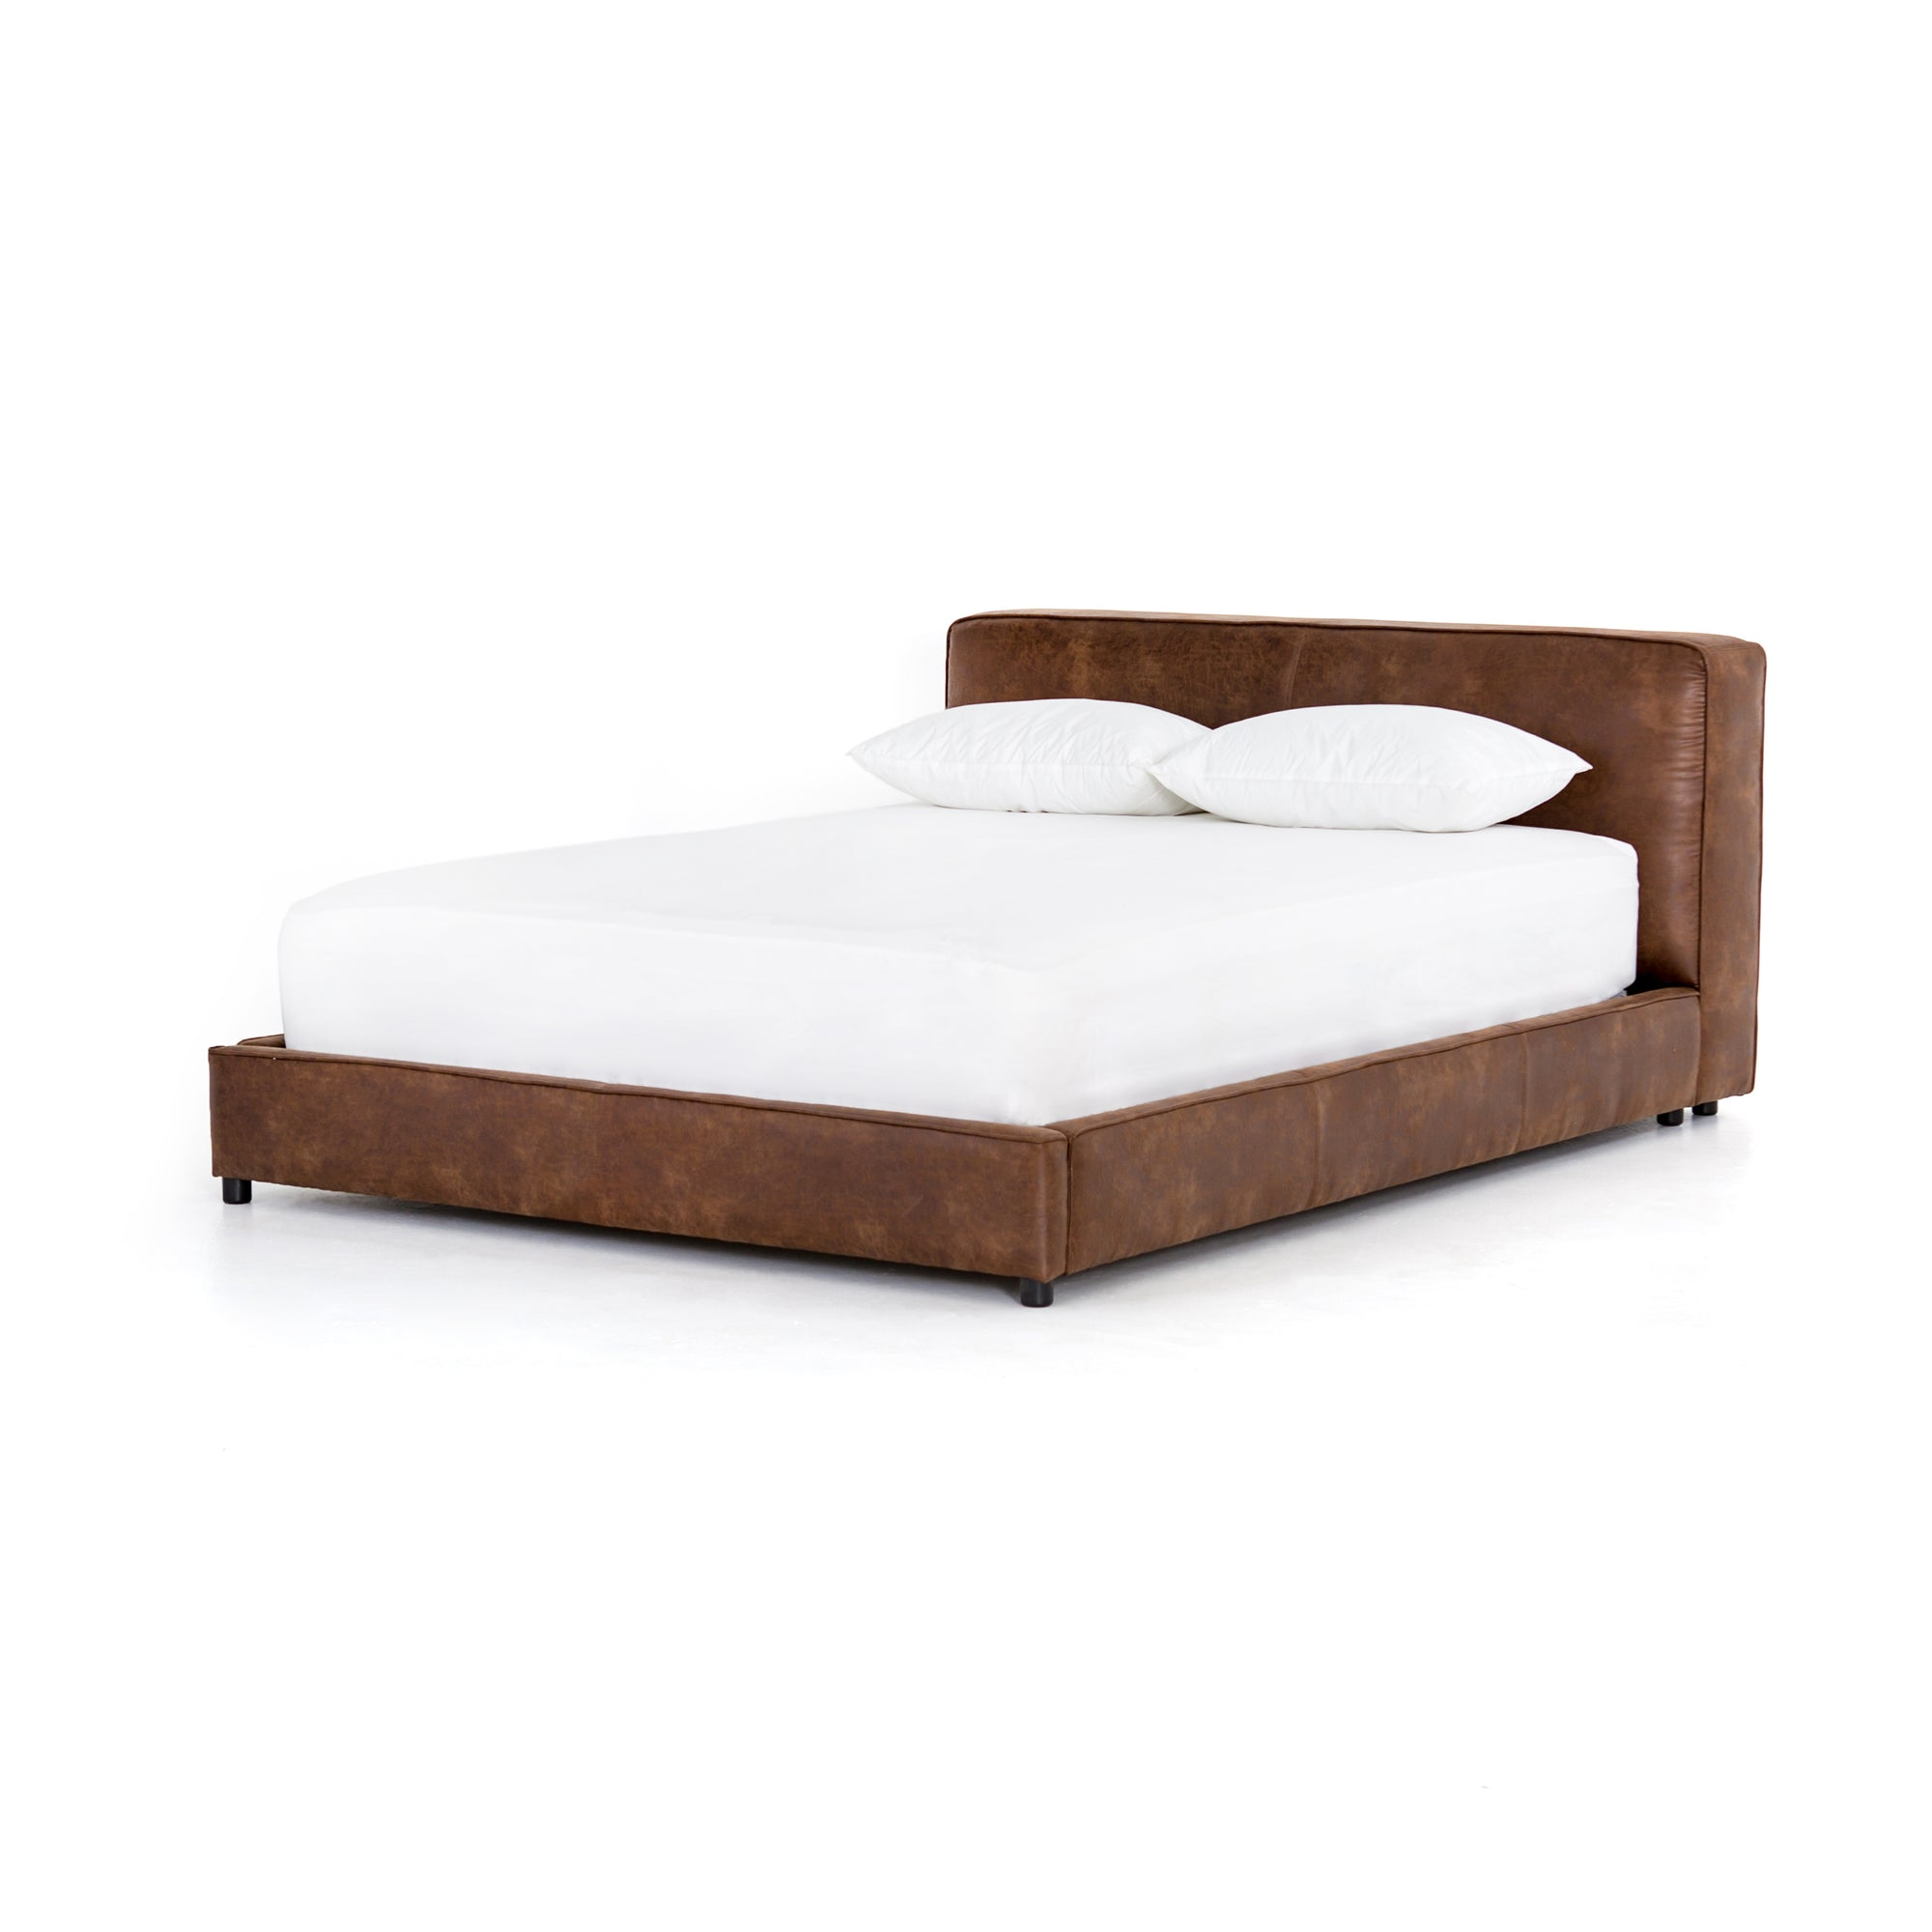 Aidan King Bed - Vintage Tobacco